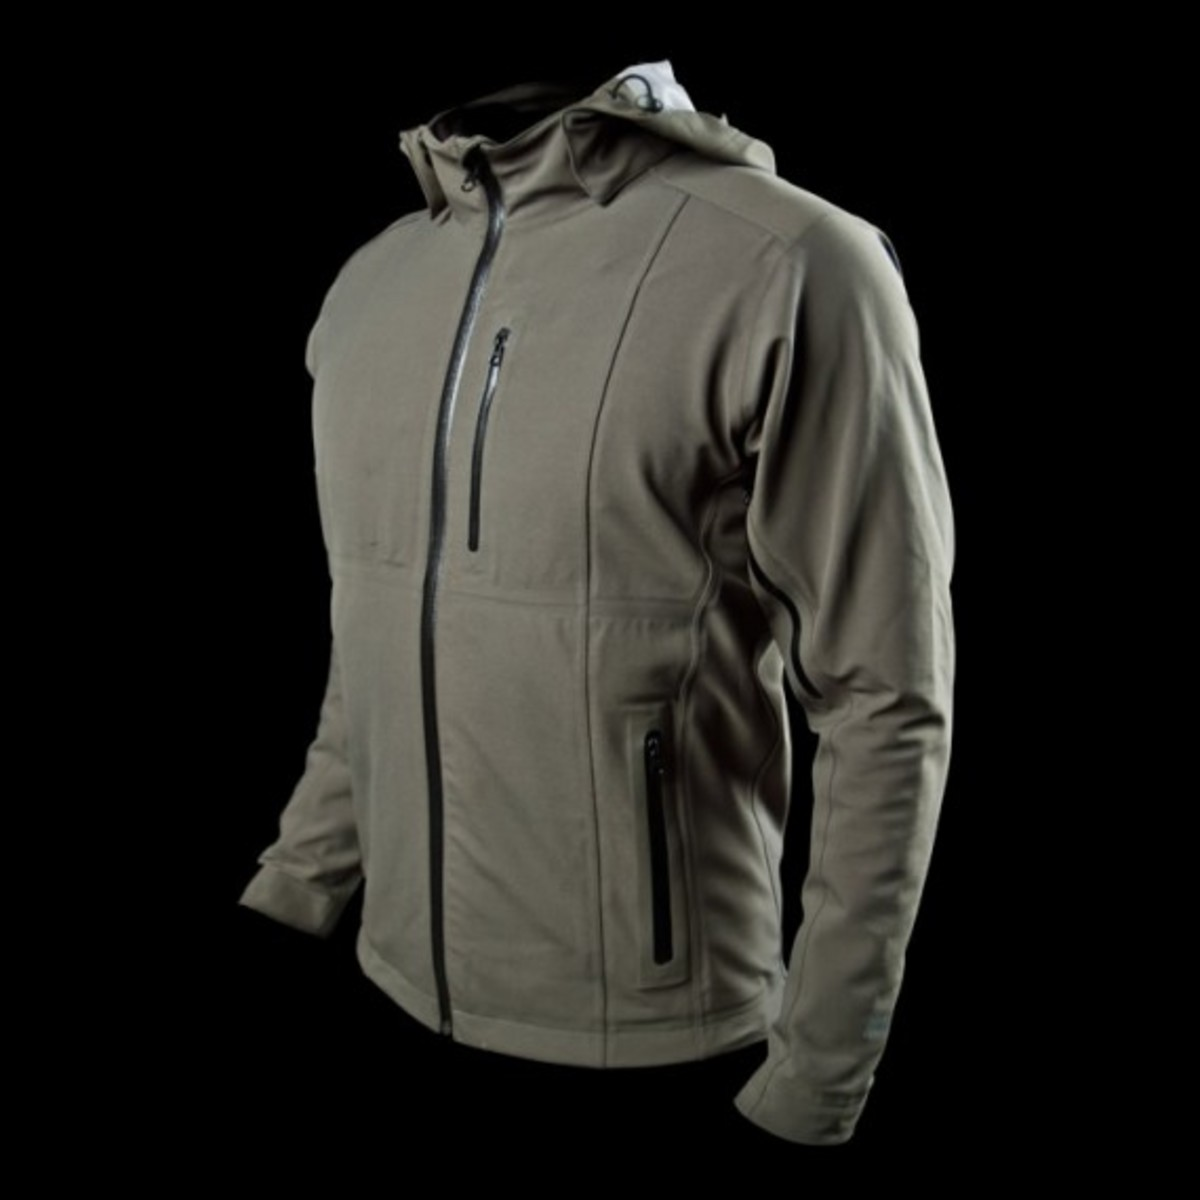 Orion Waterproof Jacket 6